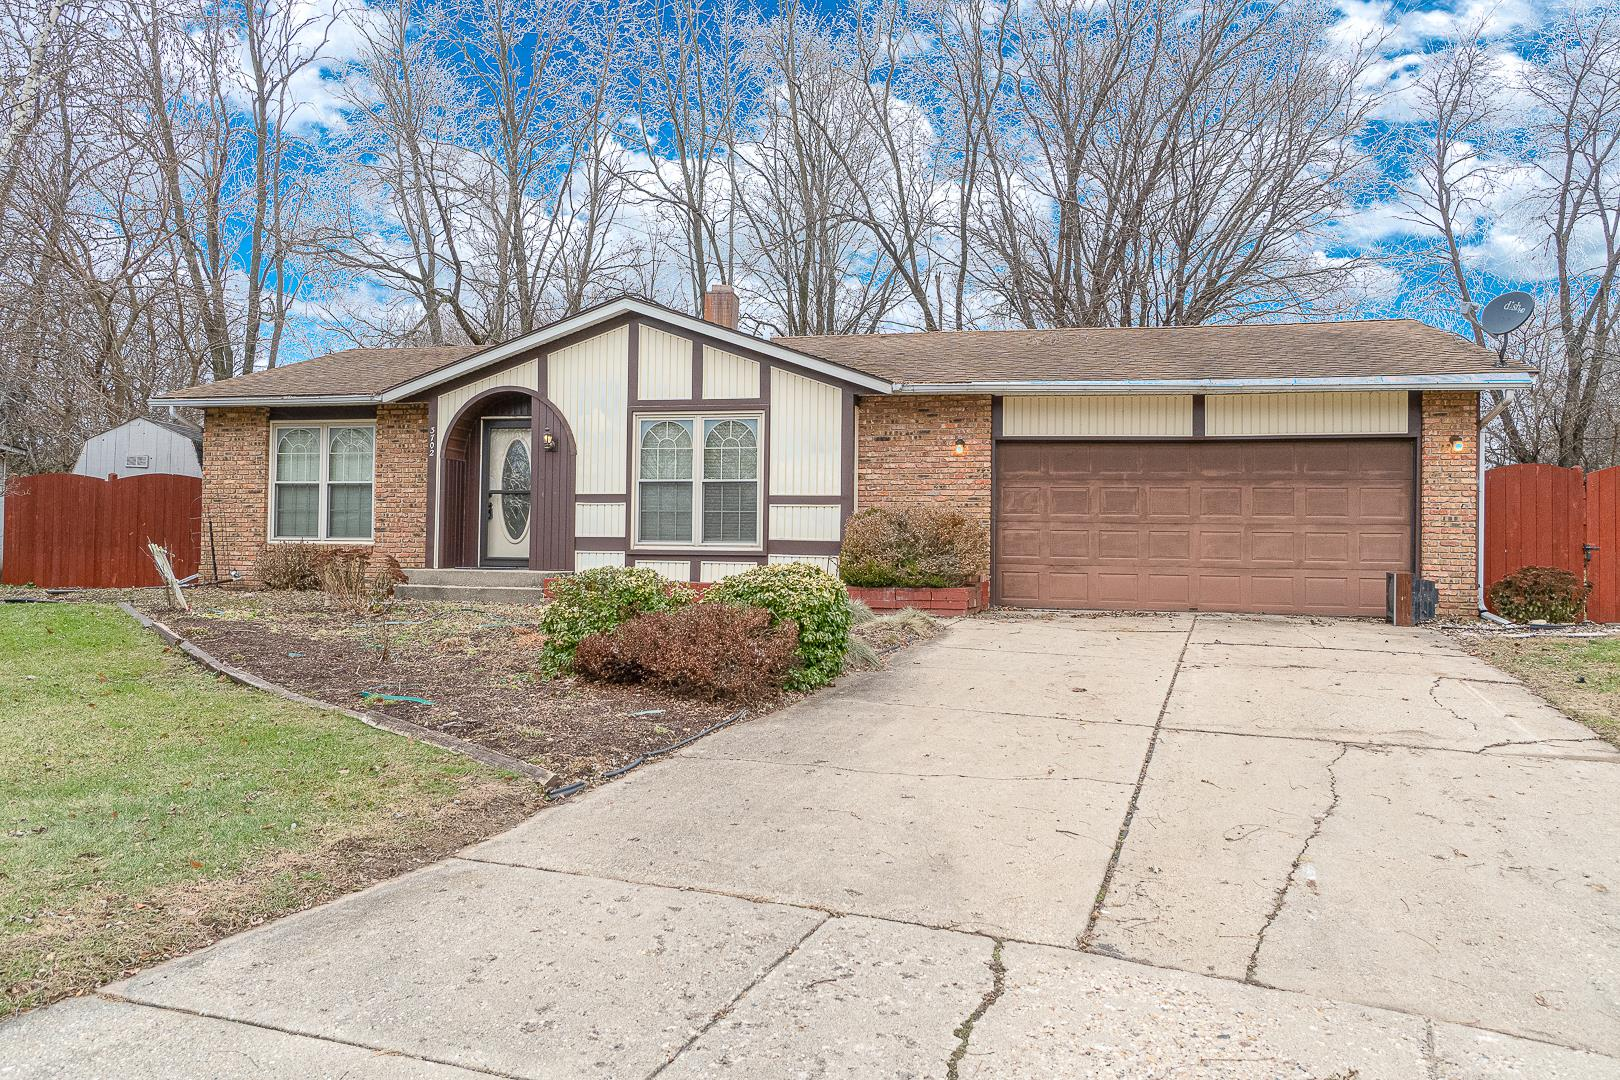 3702 Basswood Court, Rockford, IL 61114 - #: 10584299